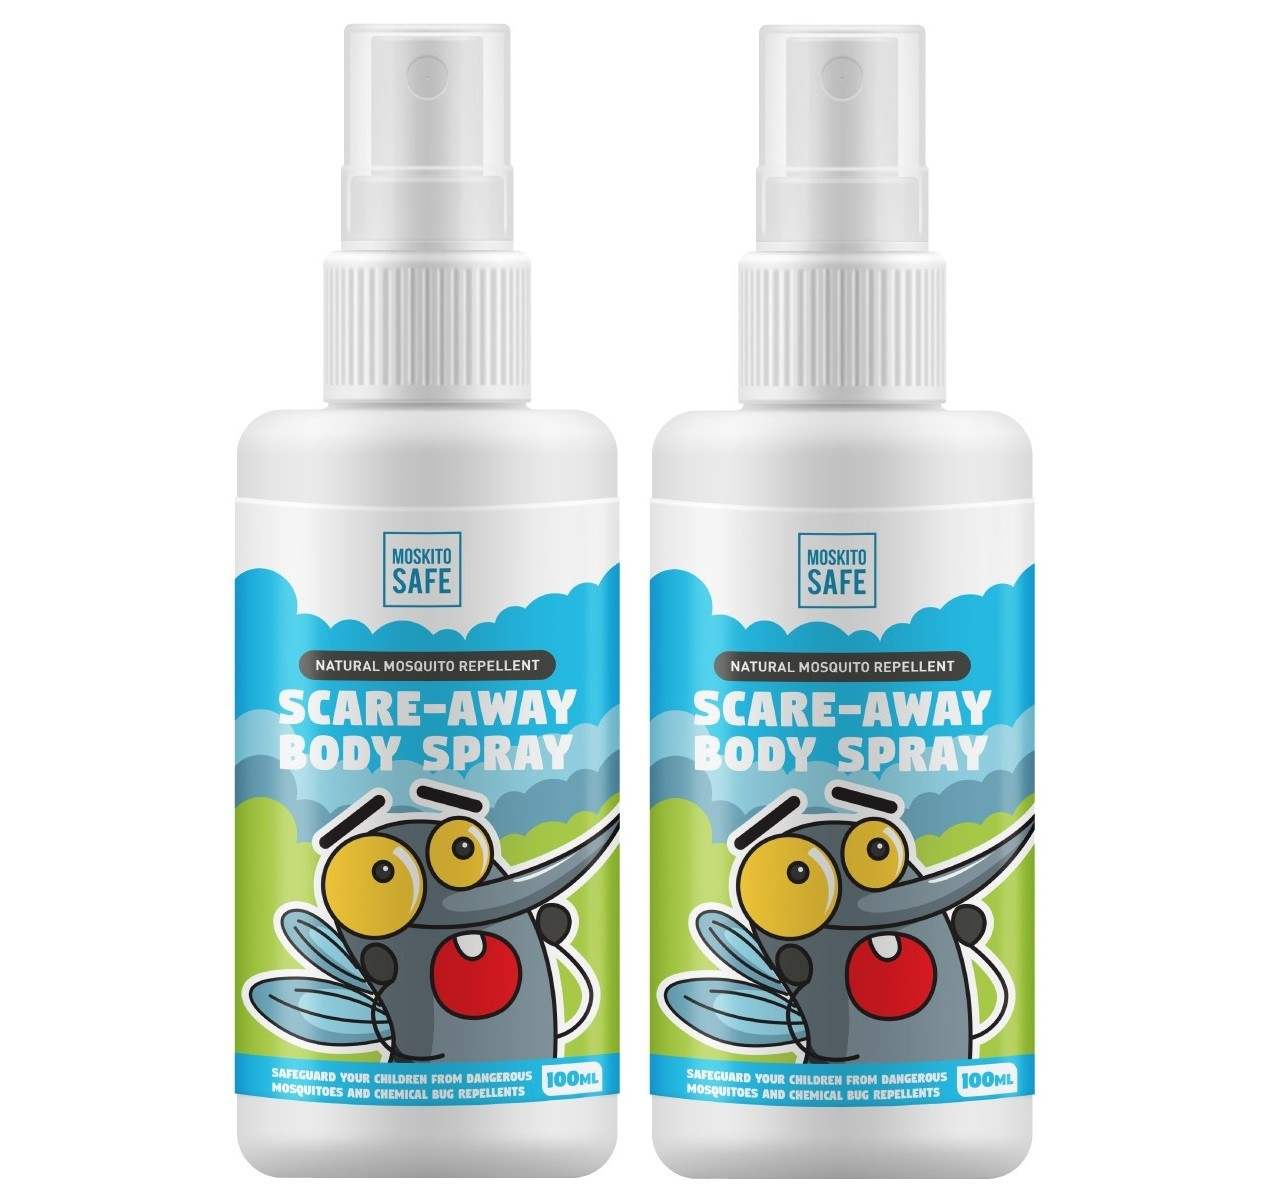 MoskitoSafe natural Mosquito repellent spray